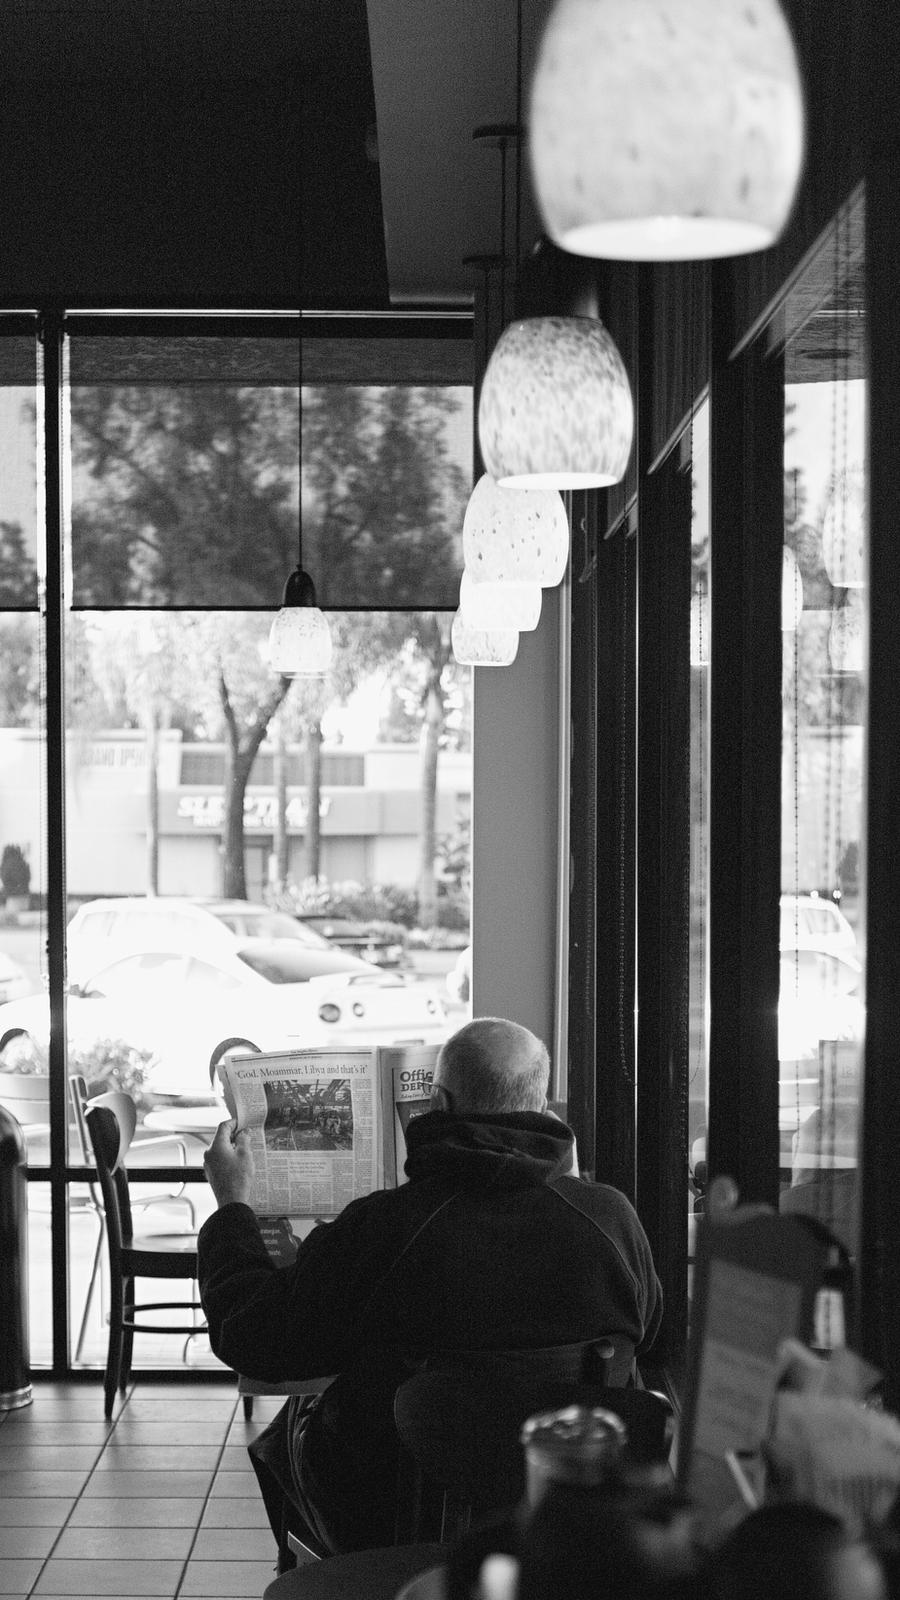 starbucks reader by myoung4828